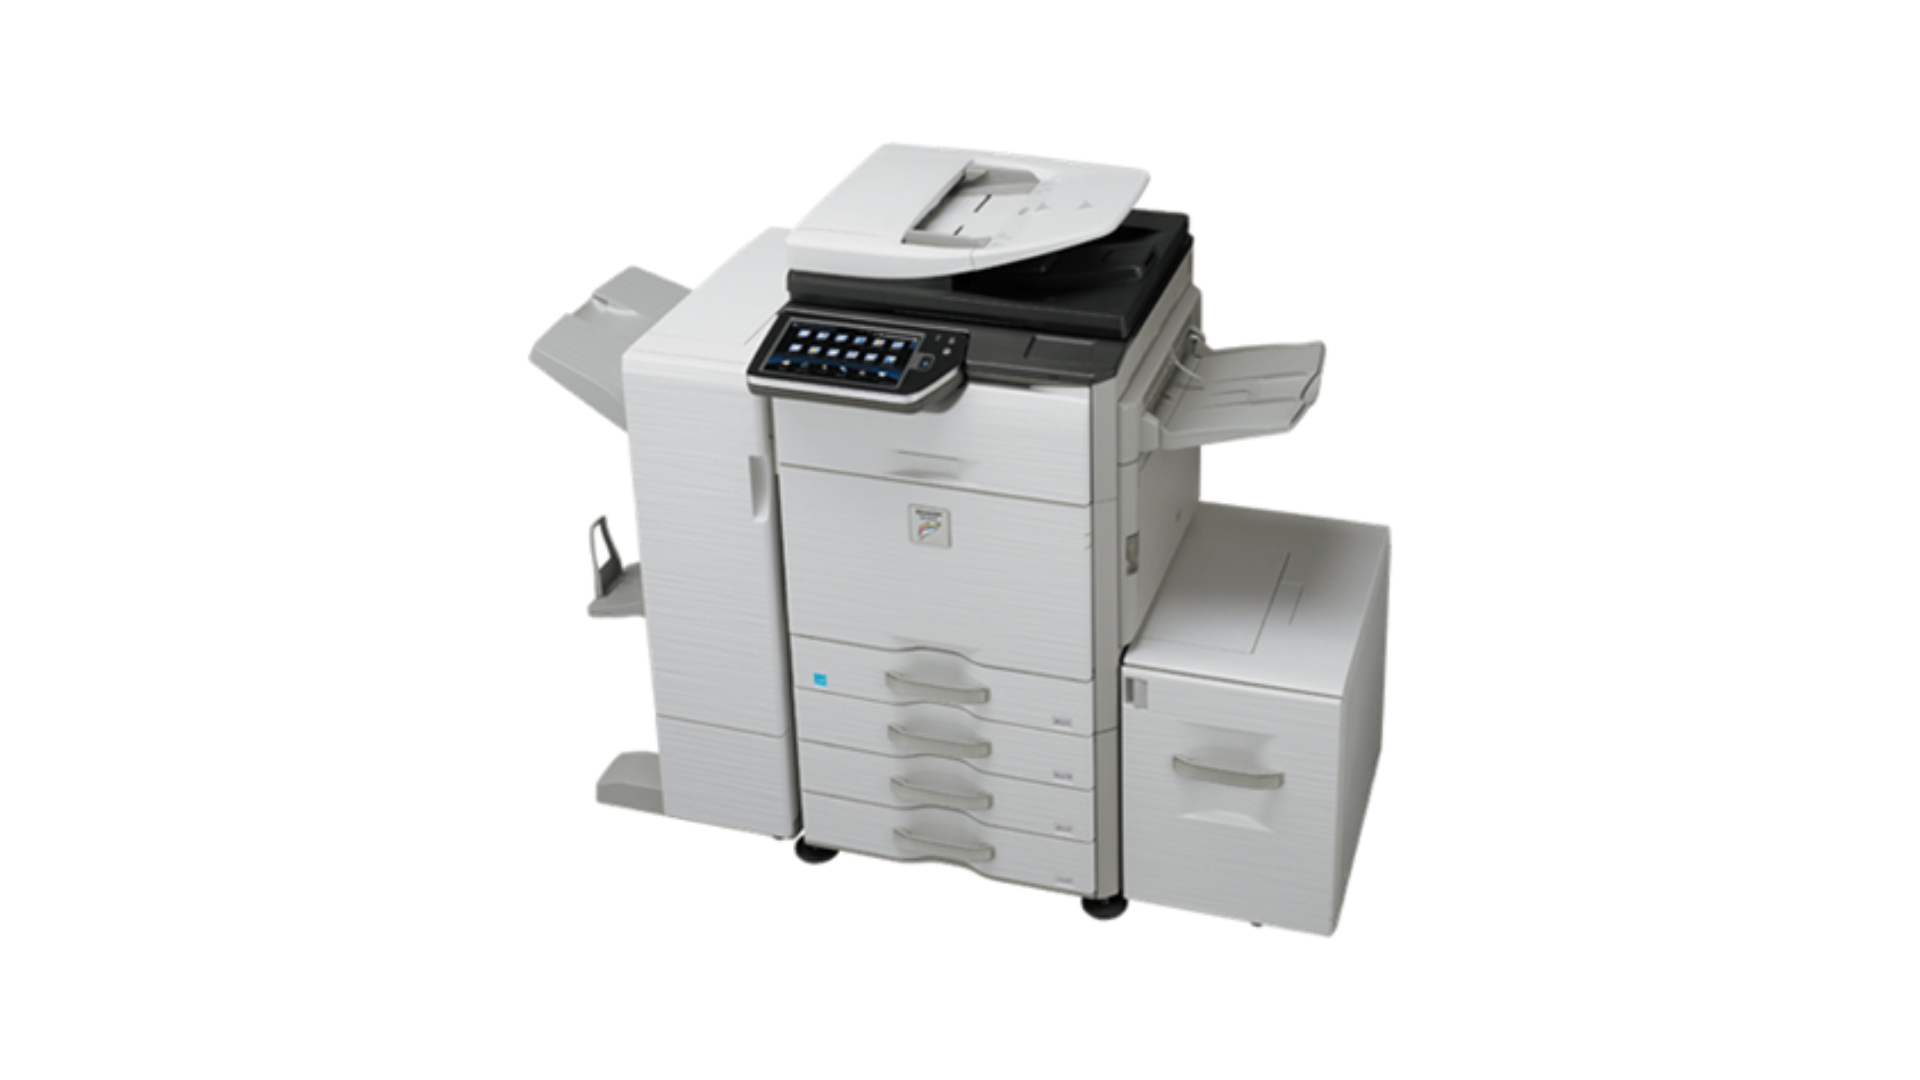 Sharp MX-3110N Printer Driver Software Download for Windows and Mac -